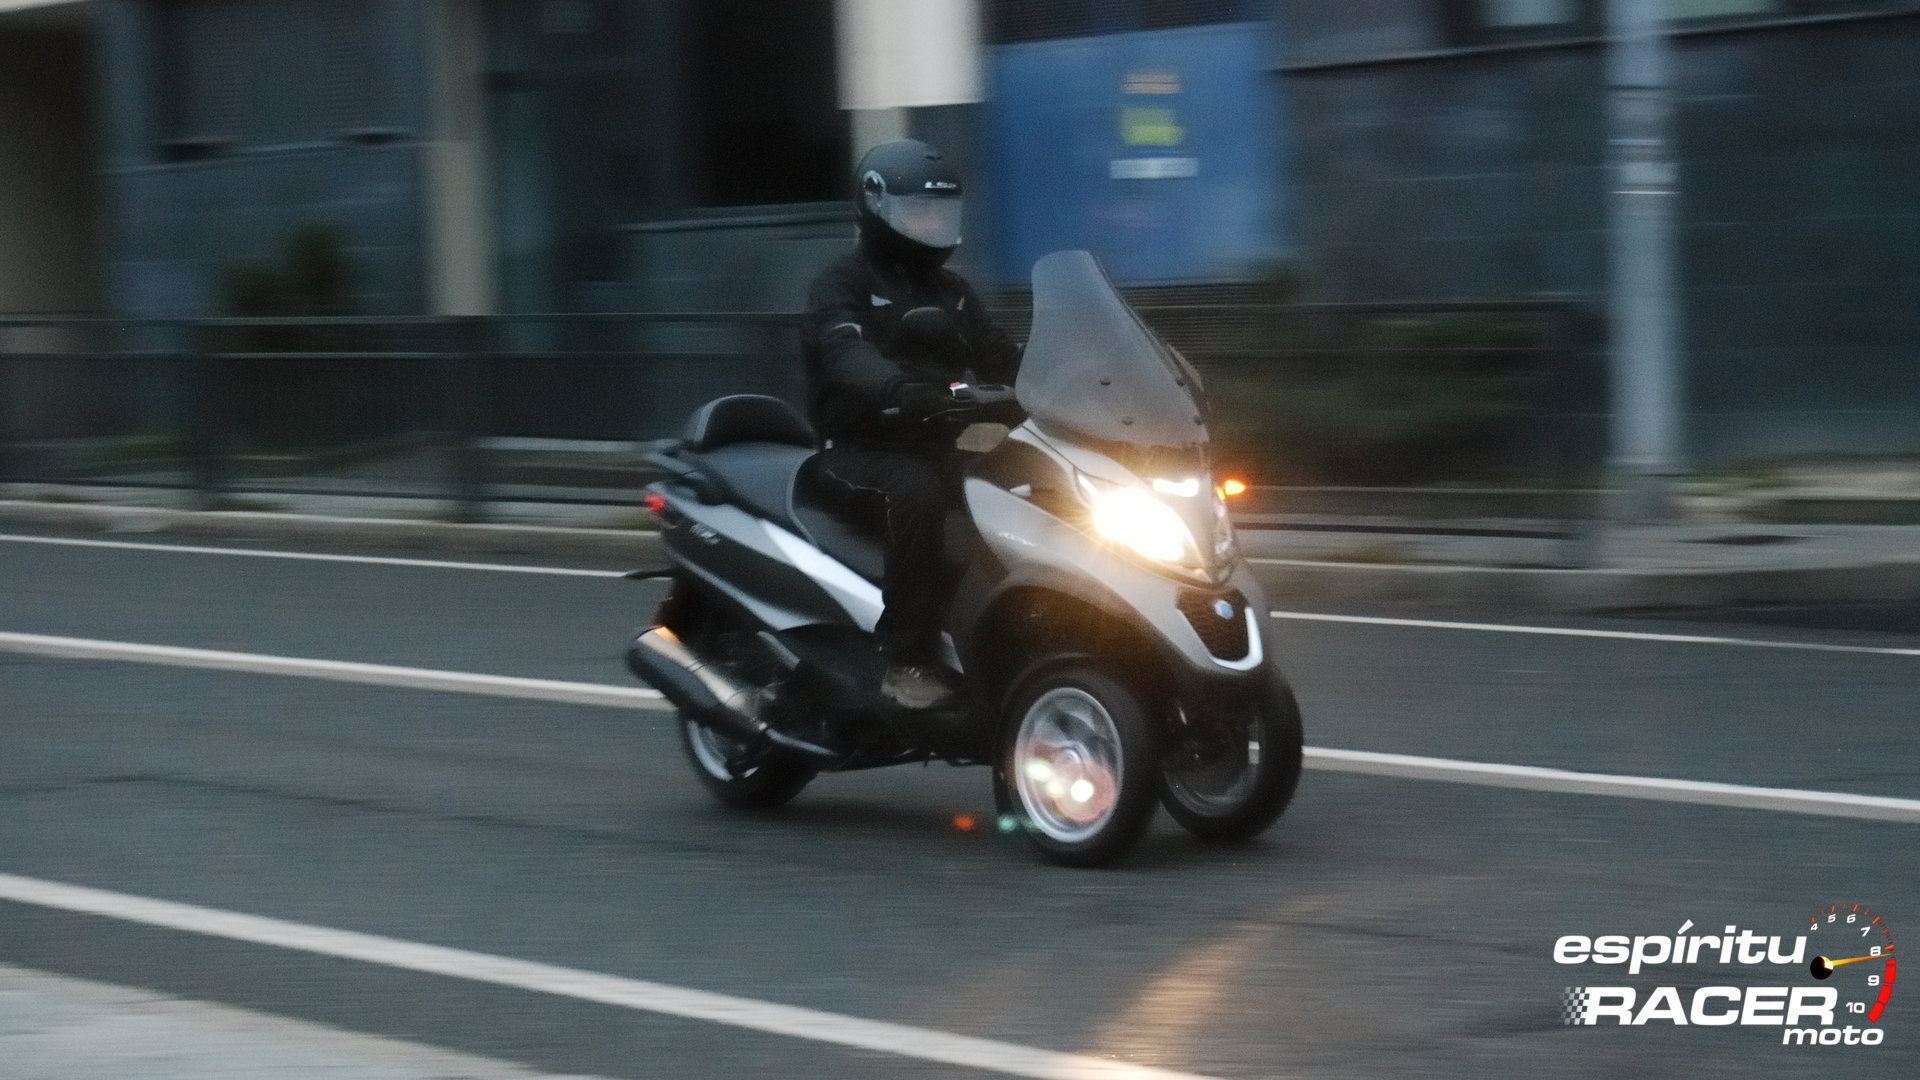 Piaggio MP3 500 LT HPE Business